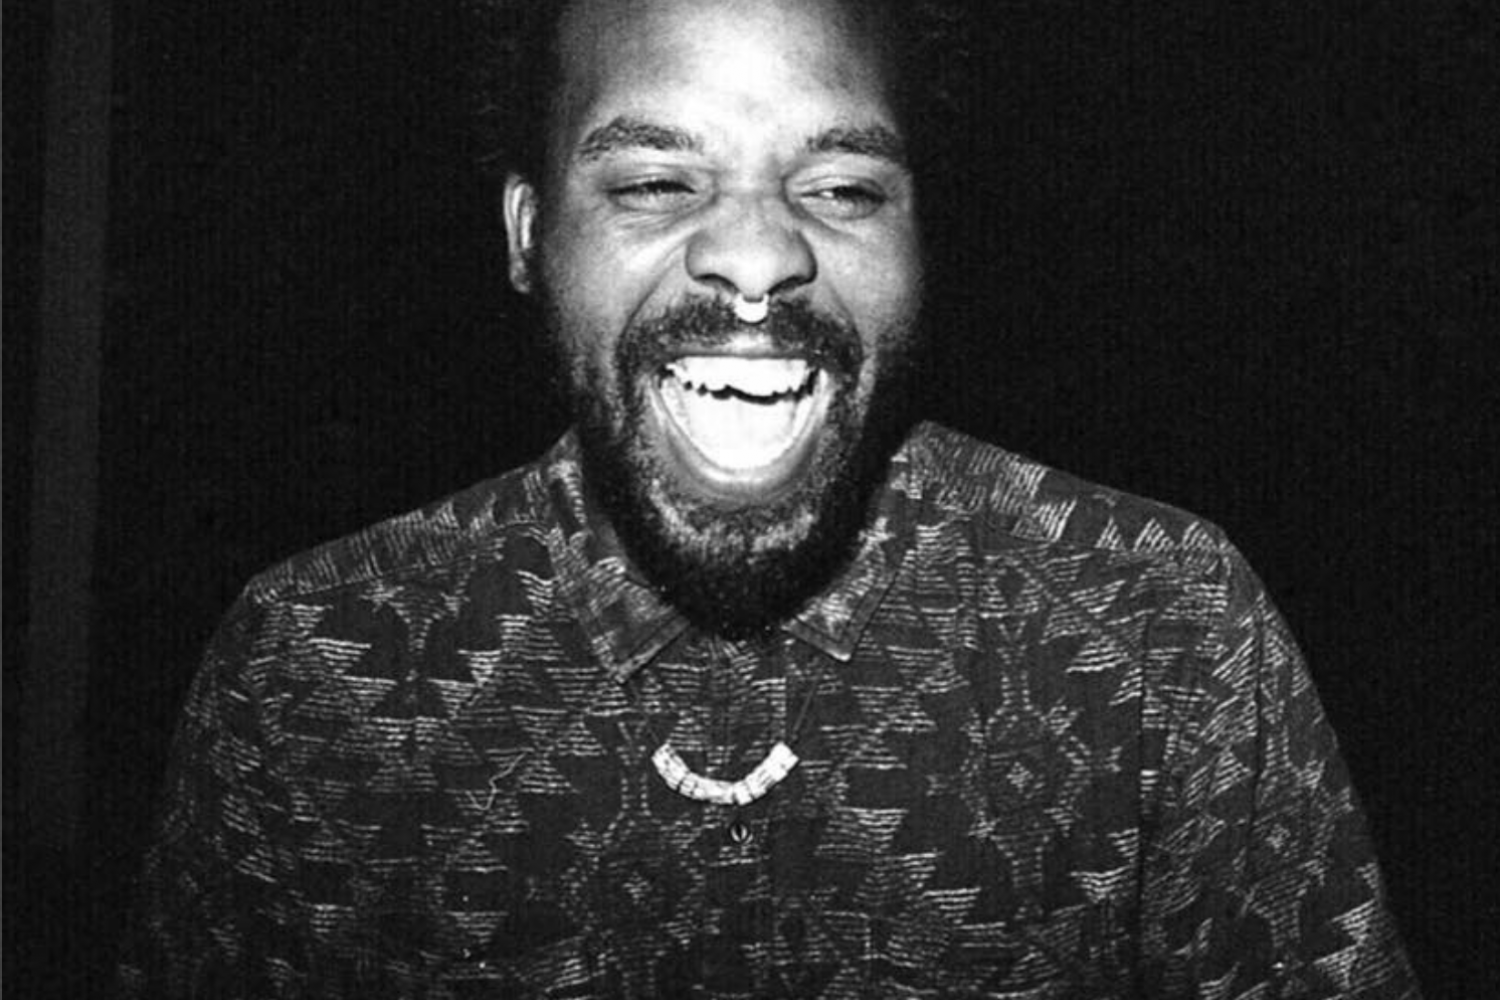 Portrait photograph of the artist Jeremiah Jordan